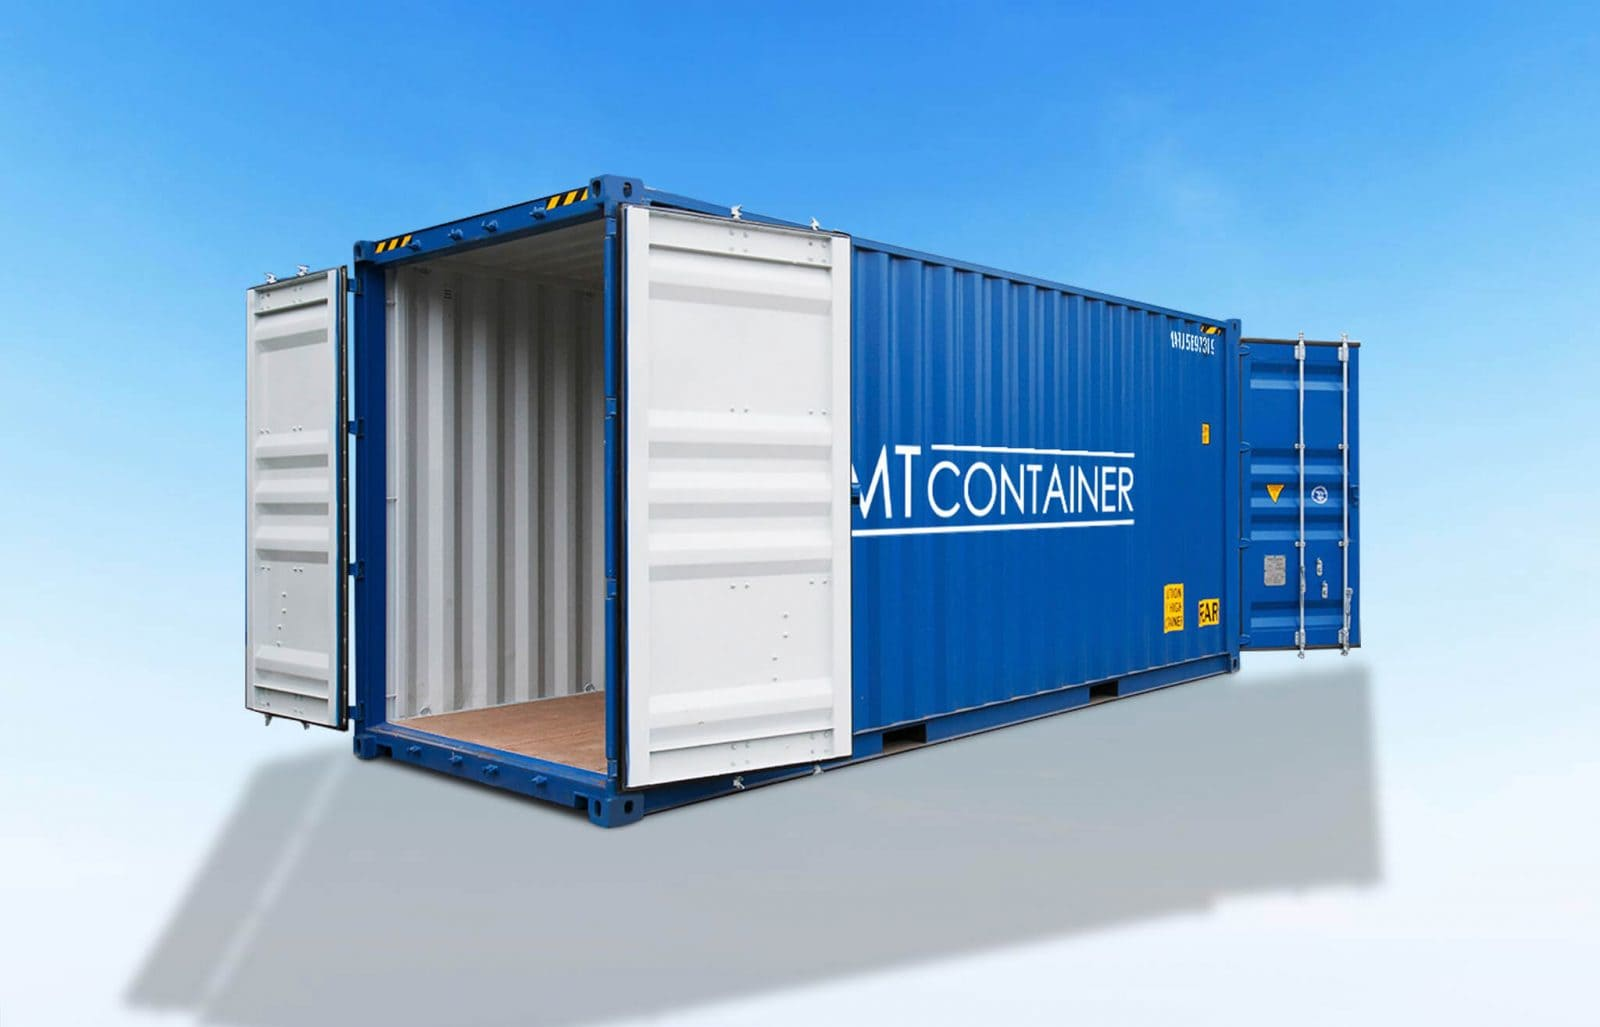 seecontainer als allrounder mt container gmbh hamburg. Black Bedroom Furniture Sets. Home Design Ideas